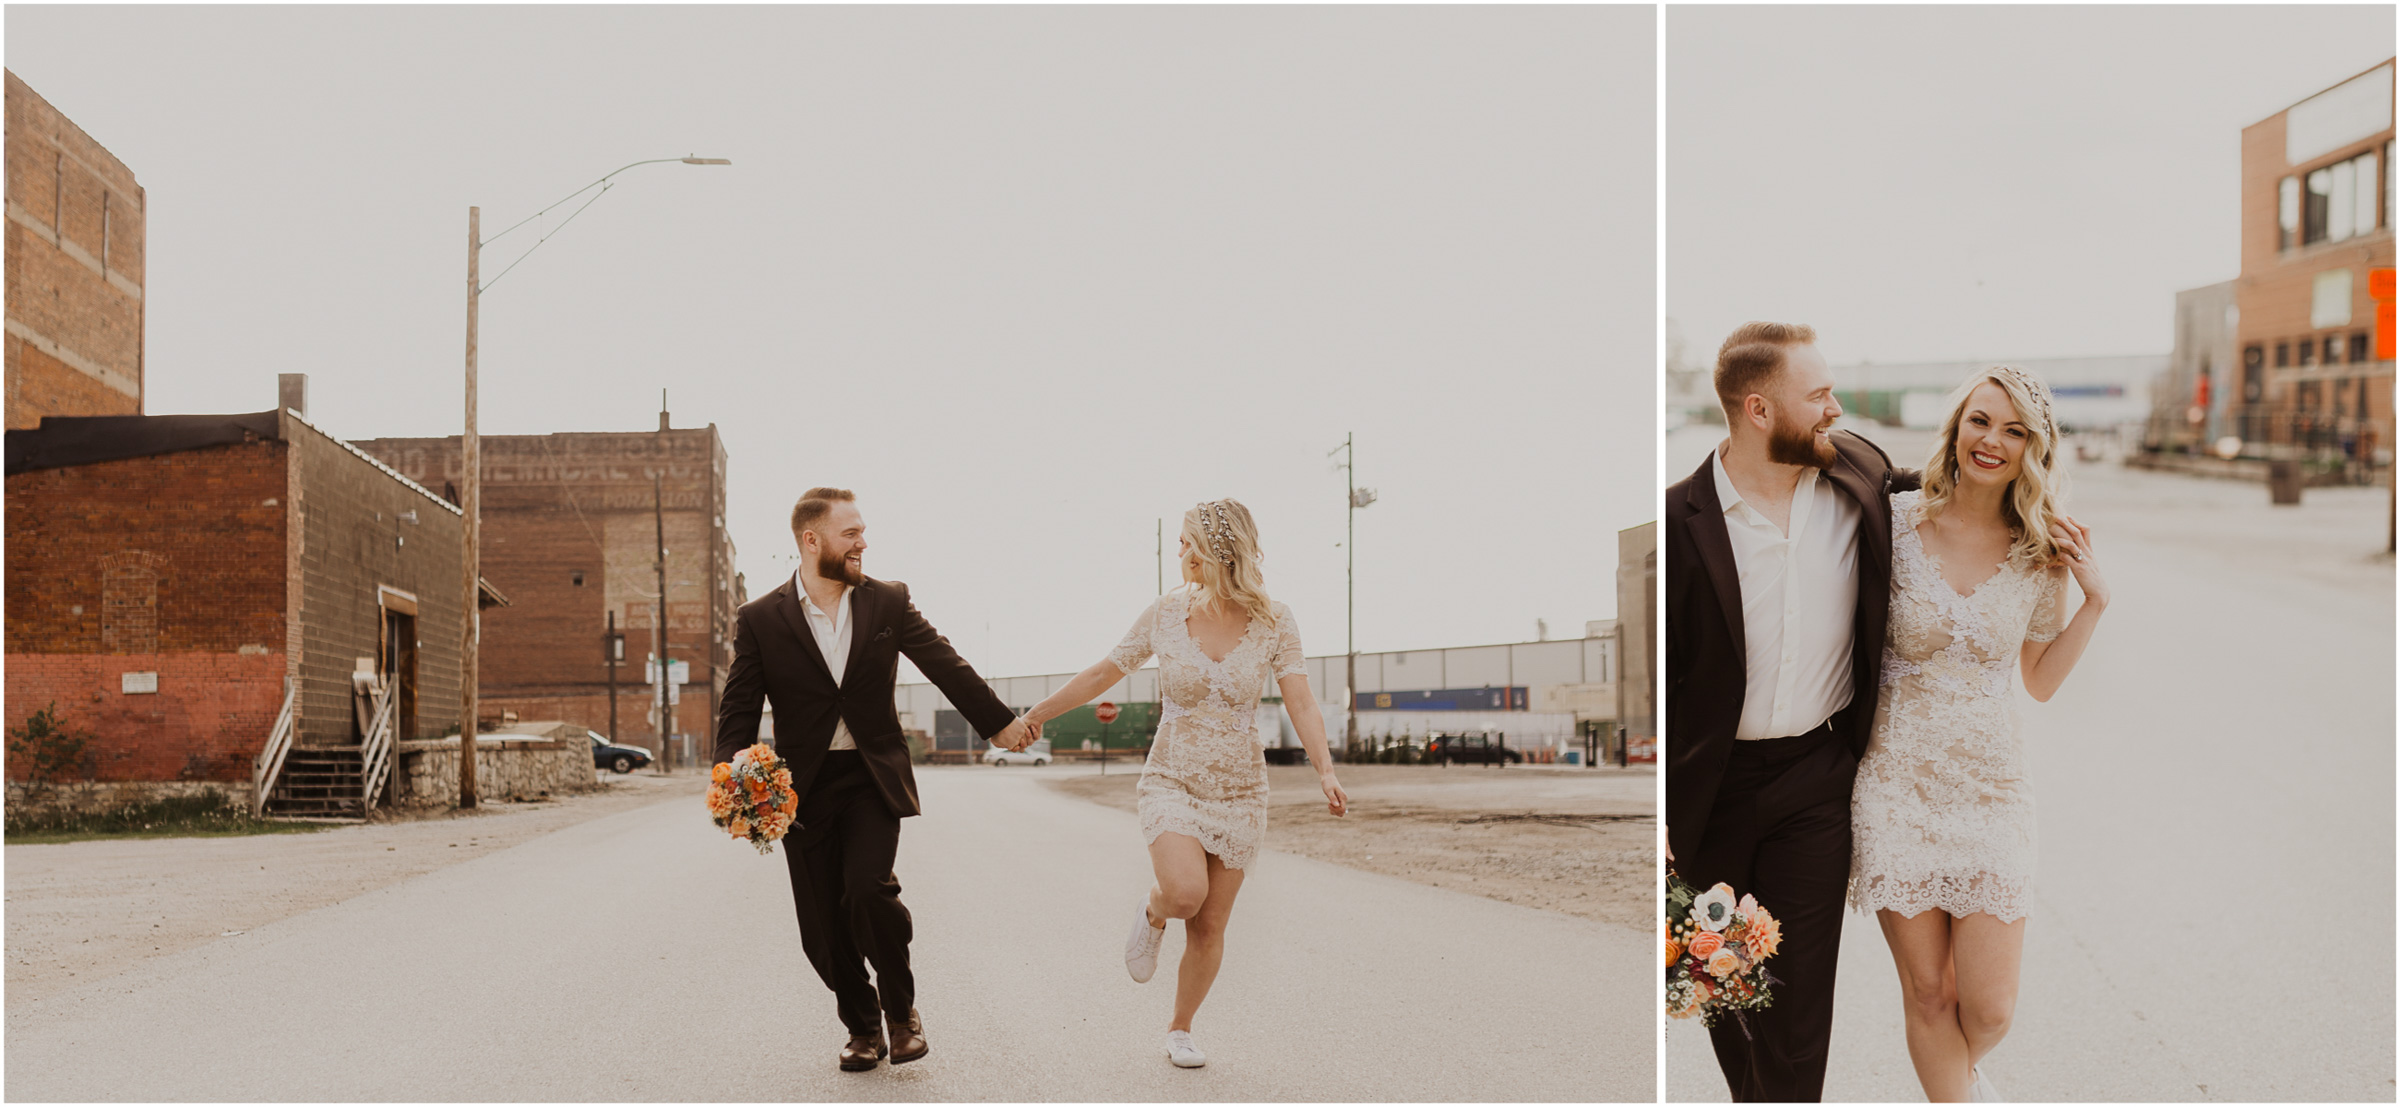 alyssa barletter photography styled shoot wedding inspiration kansas city west bottoms photographer motorcycle edgy intimate-31.jpg